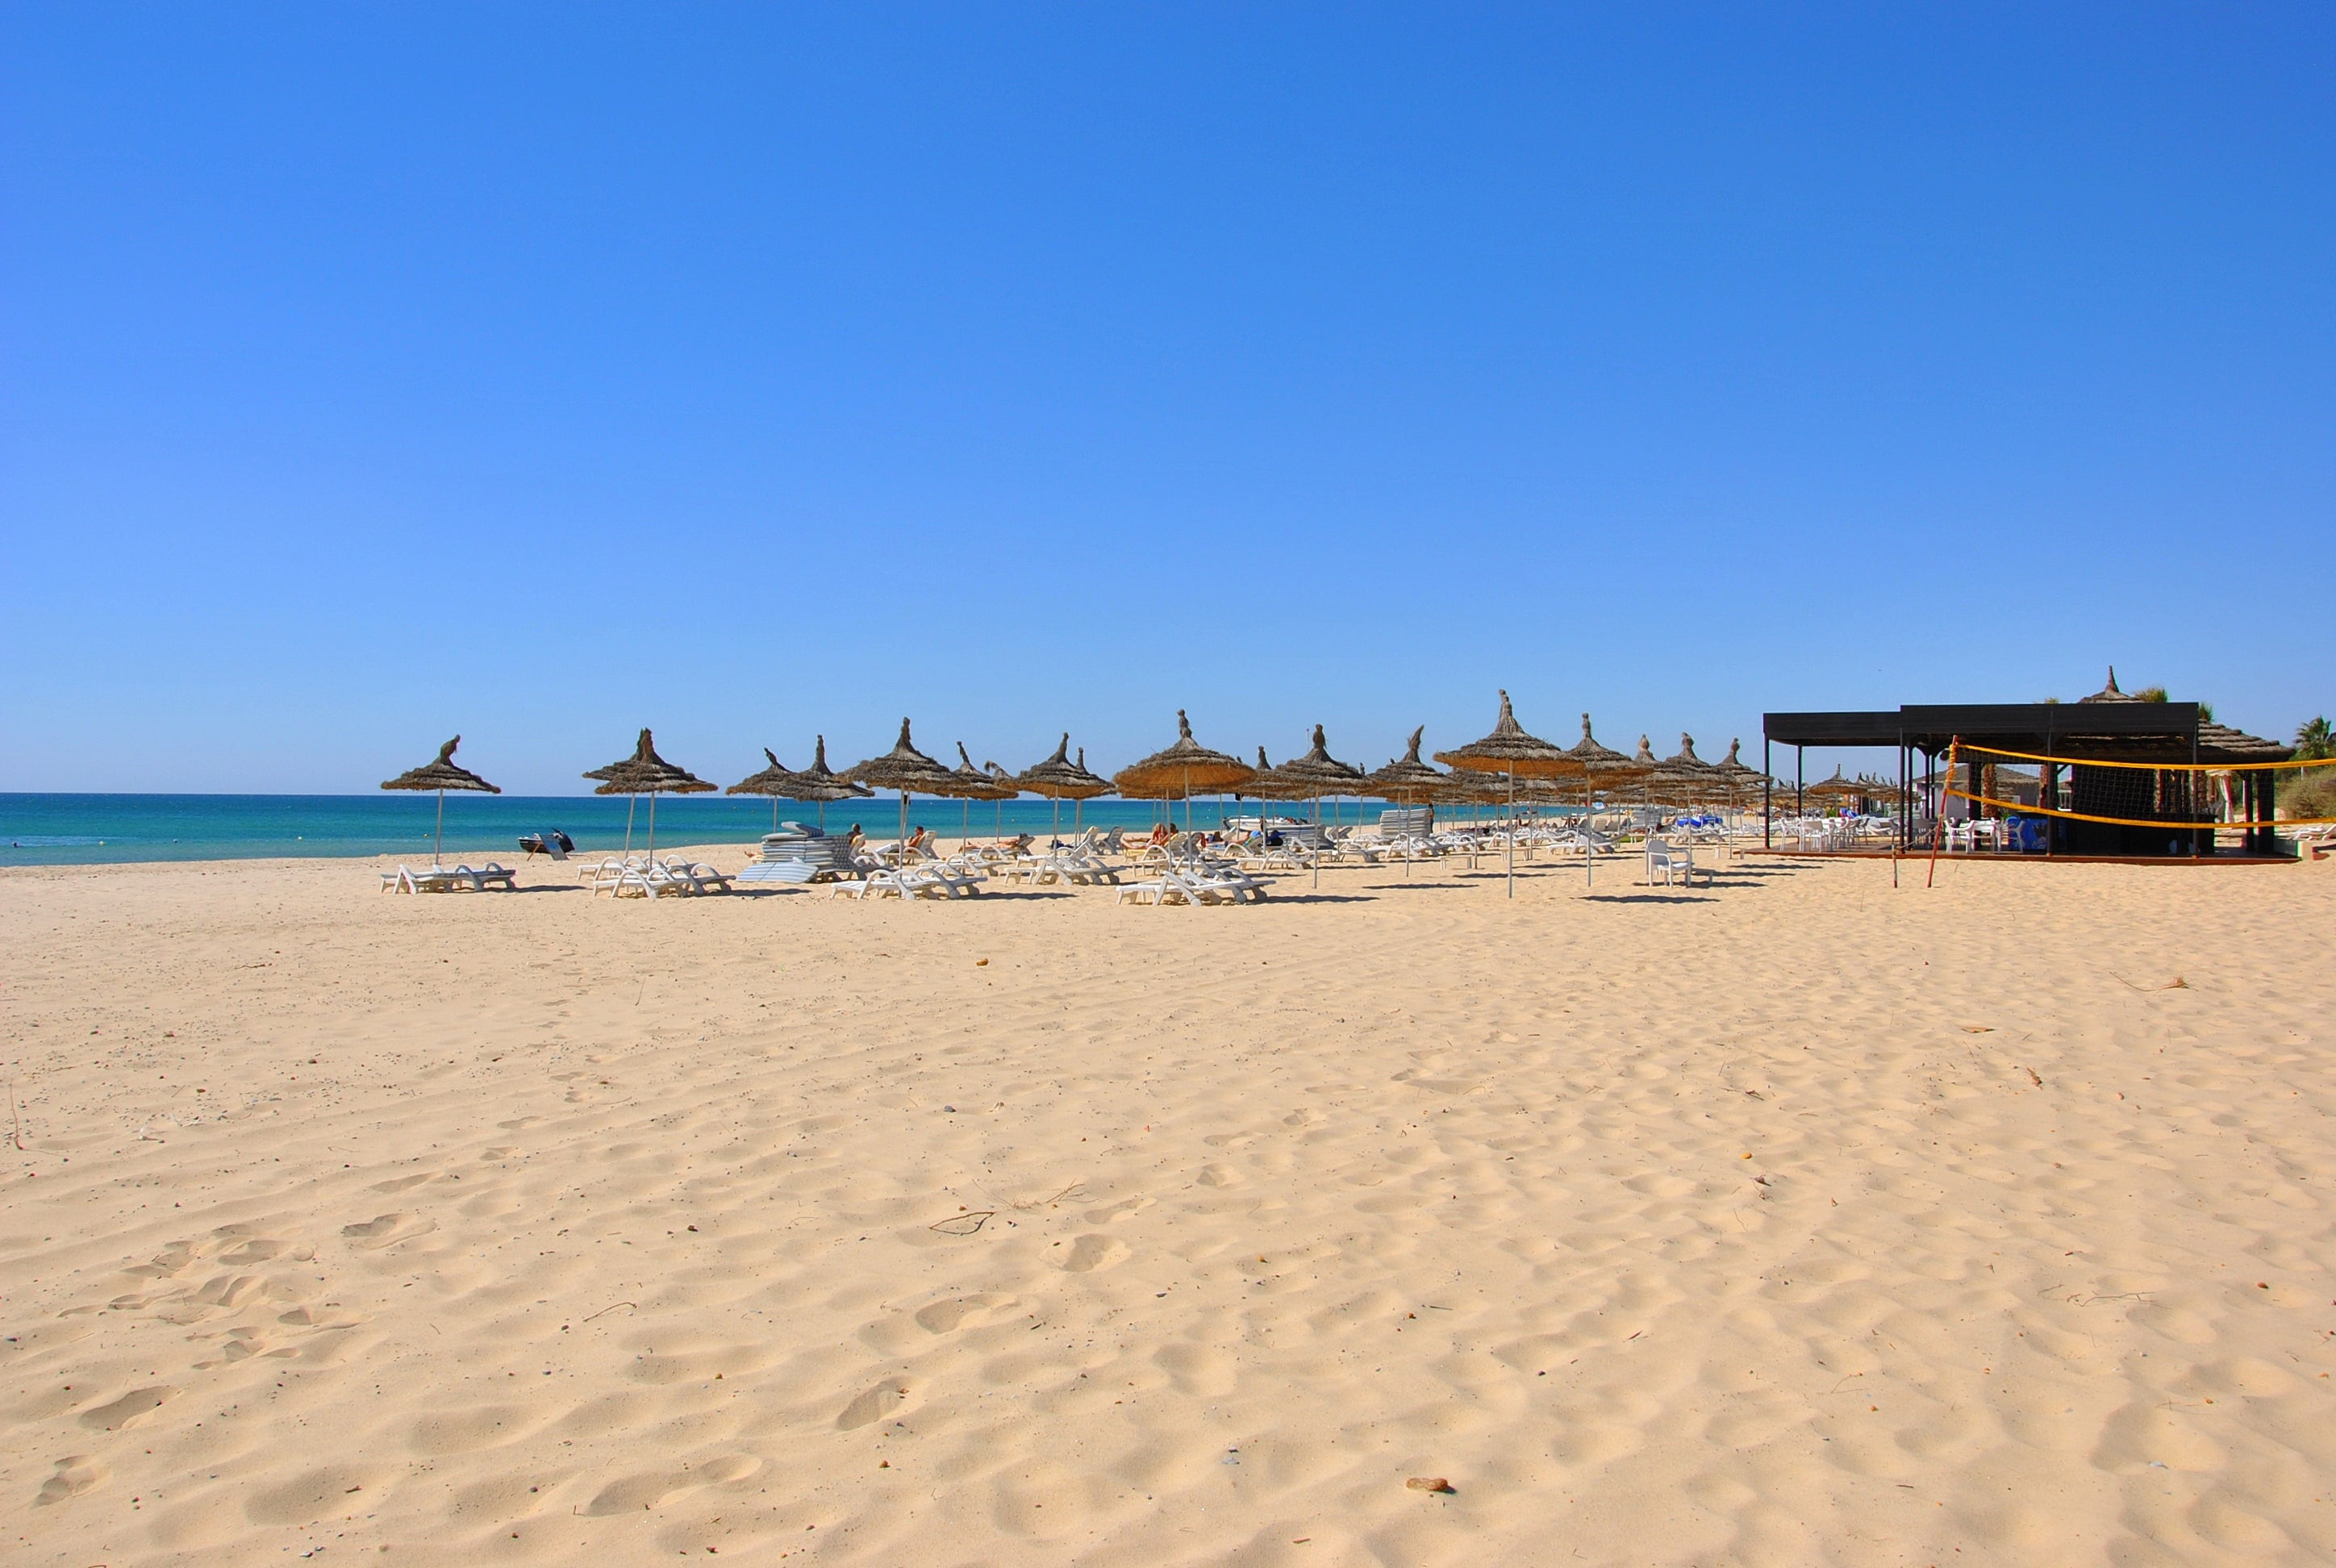 Full Day from TUNIS: Nabeul - Hammamet - Sousse